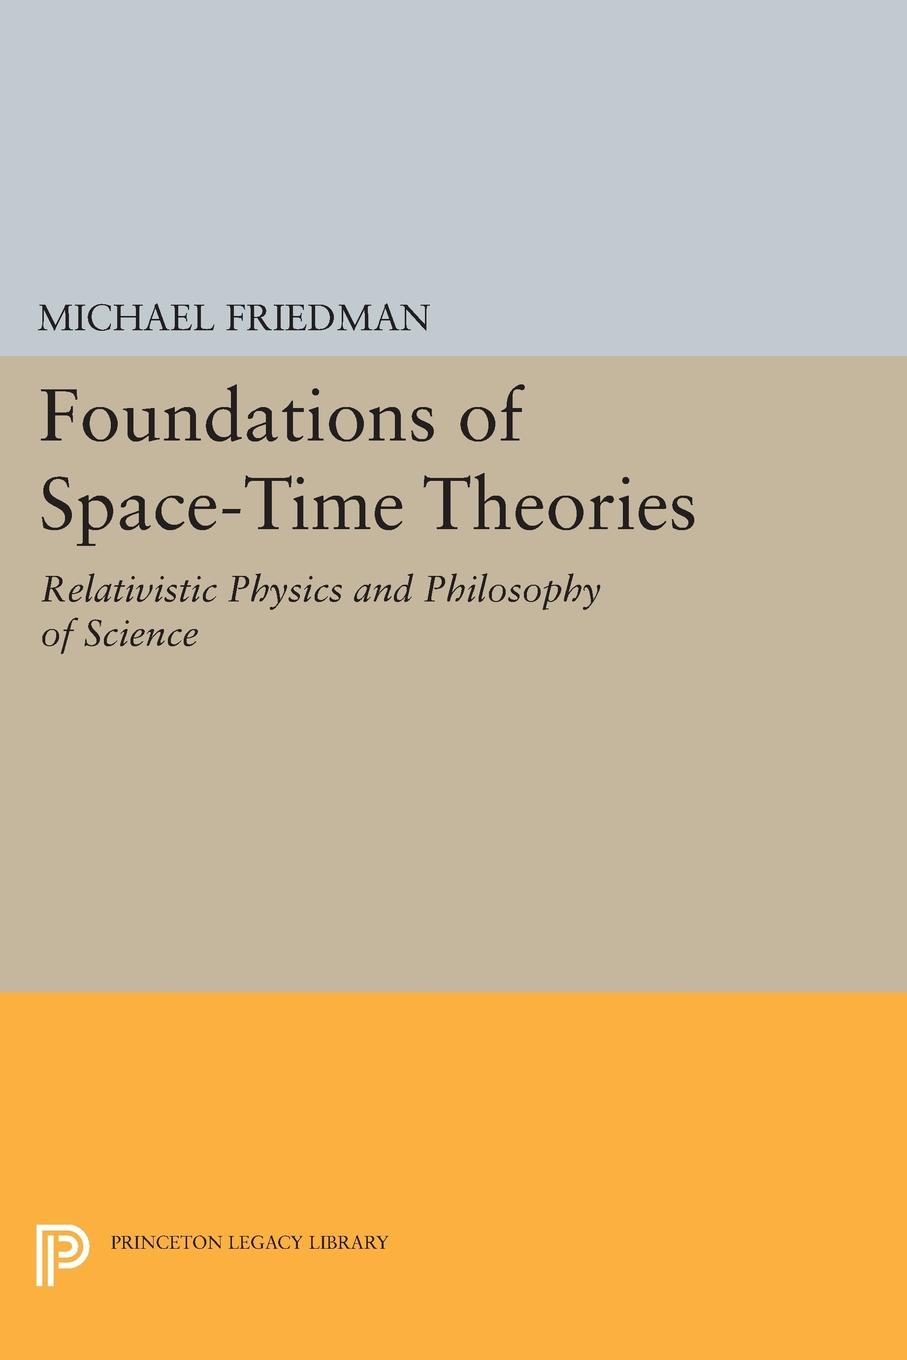 Foundations of Space-Time Theories. Relativistic Physics and Philosophy of Science